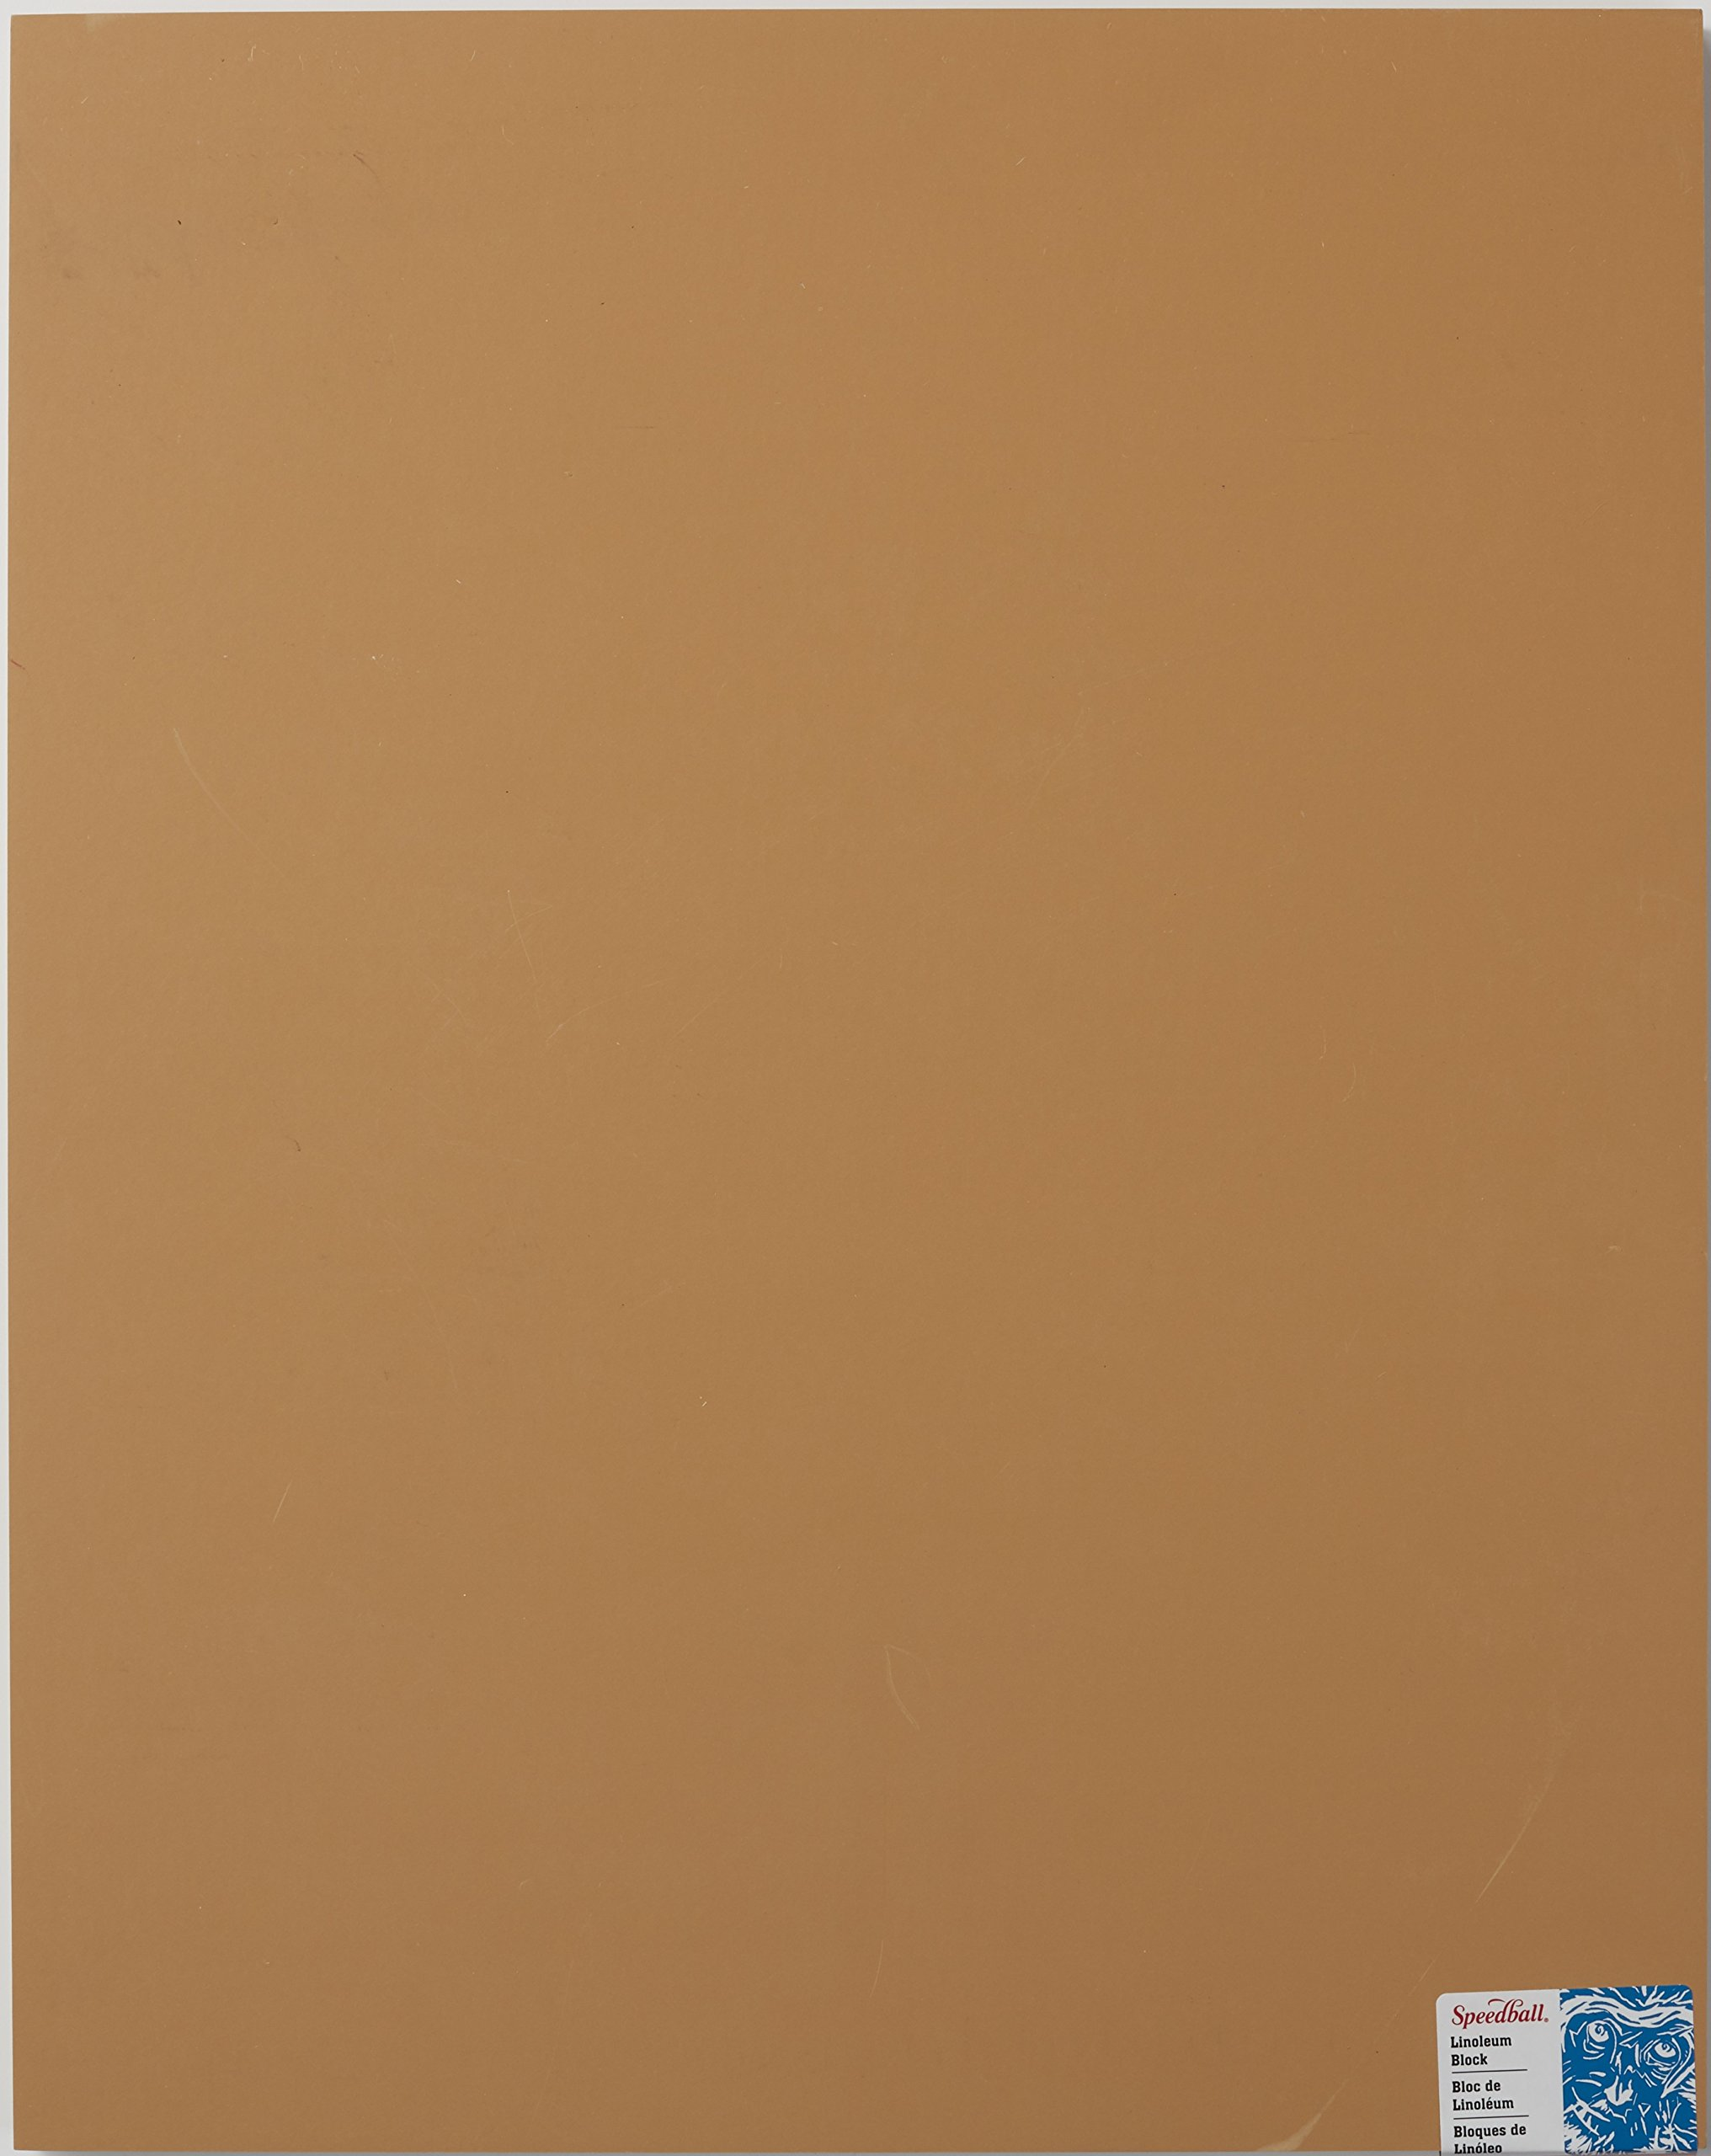 Speedball 4318 Premium Mounted Linoleum Block – Fine, Flat Surface for Easy Carving, Smoky Tan 19 x 24 Inches